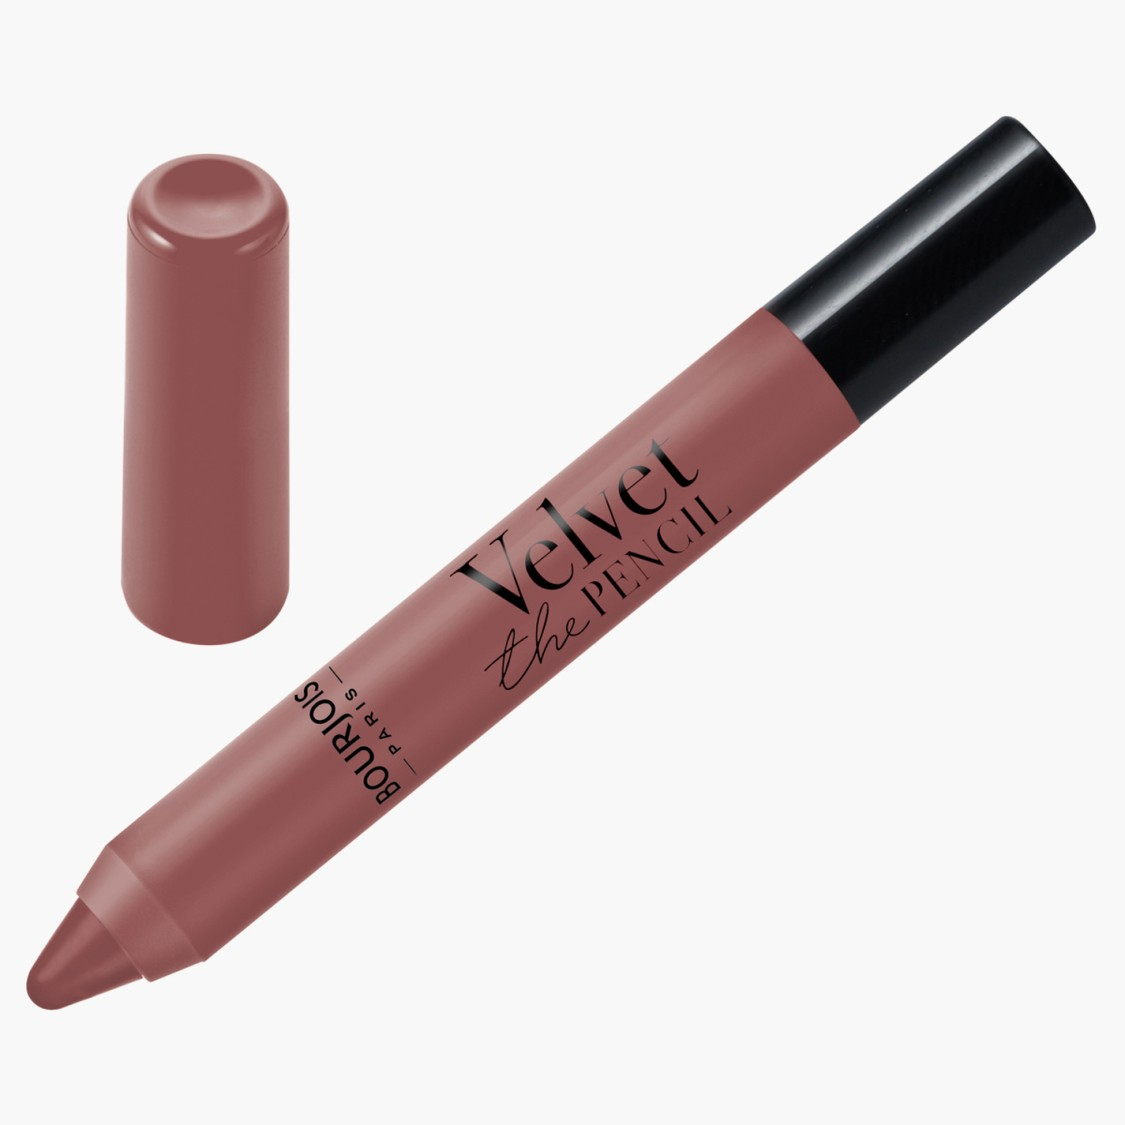 Bourjois Velvet The Pencil Lip Liner